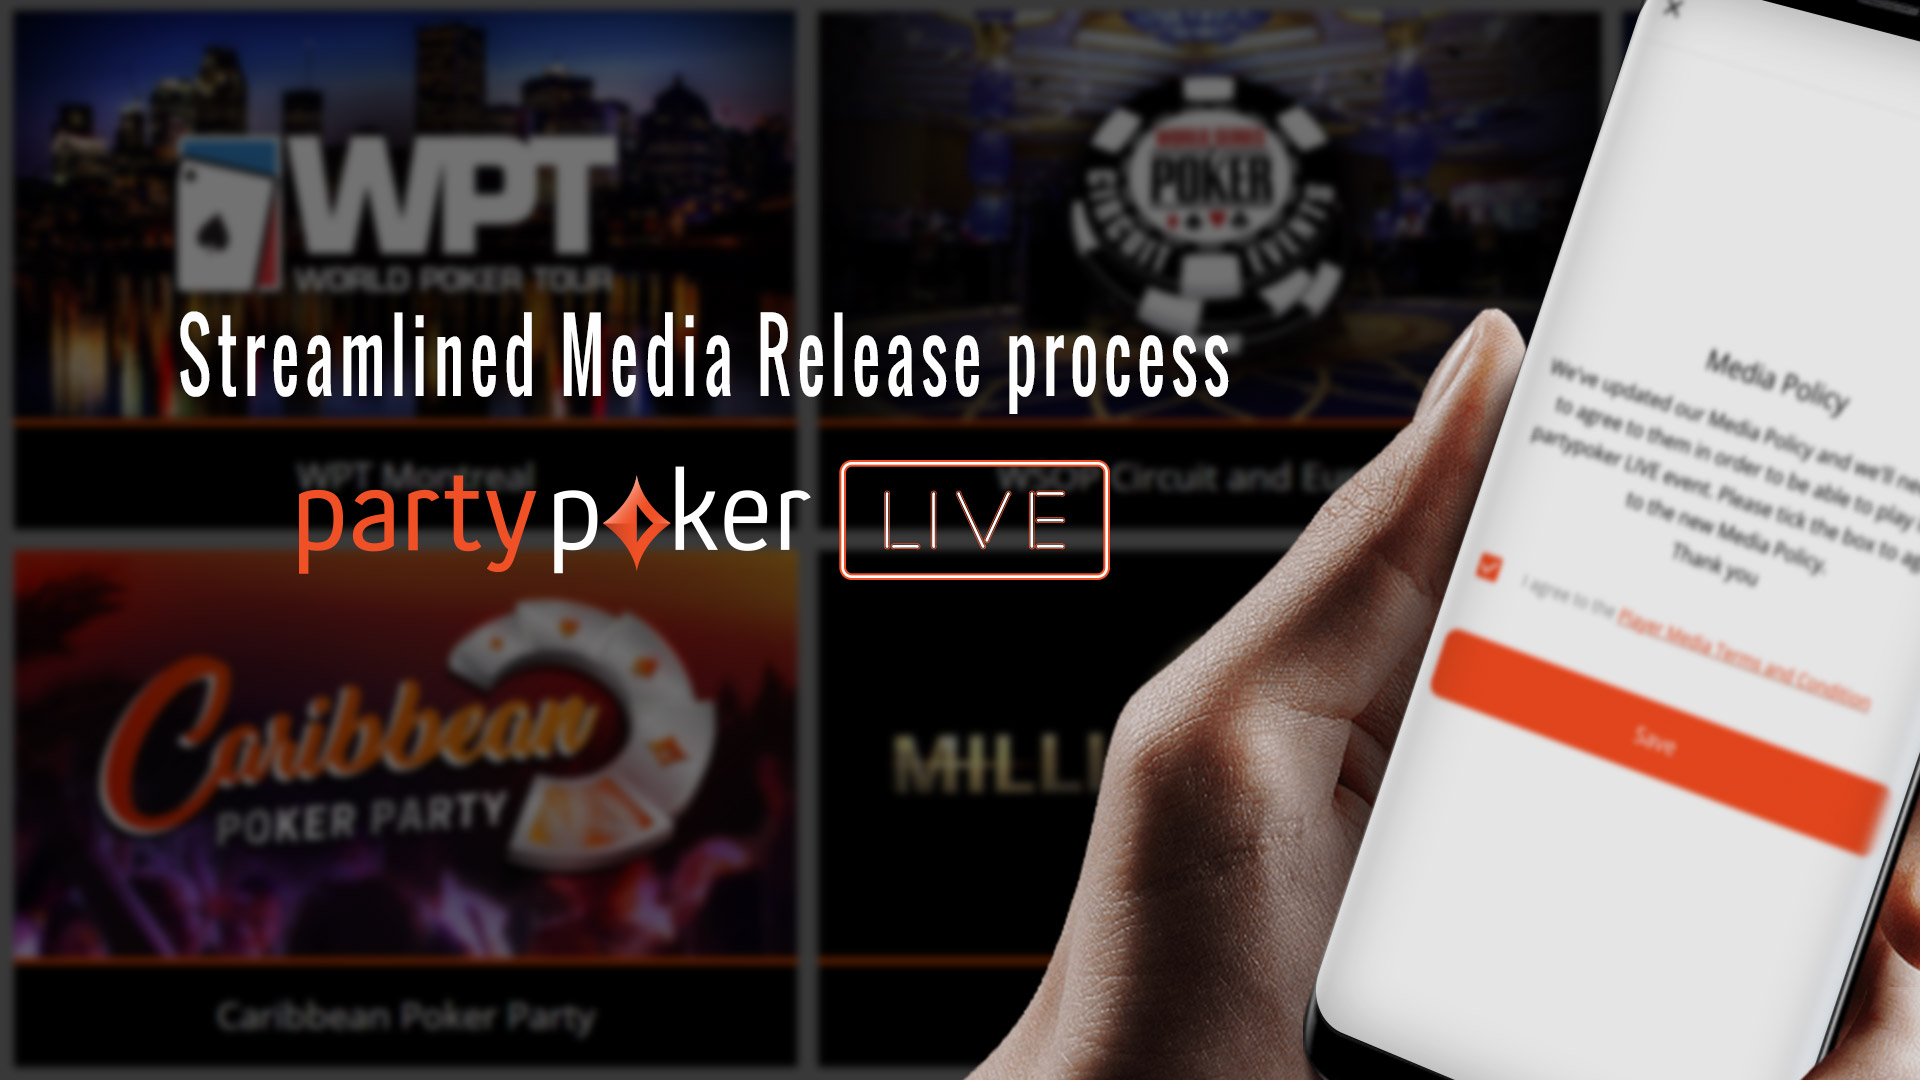 Streamlined Media Release process for partypoker LIVE Events